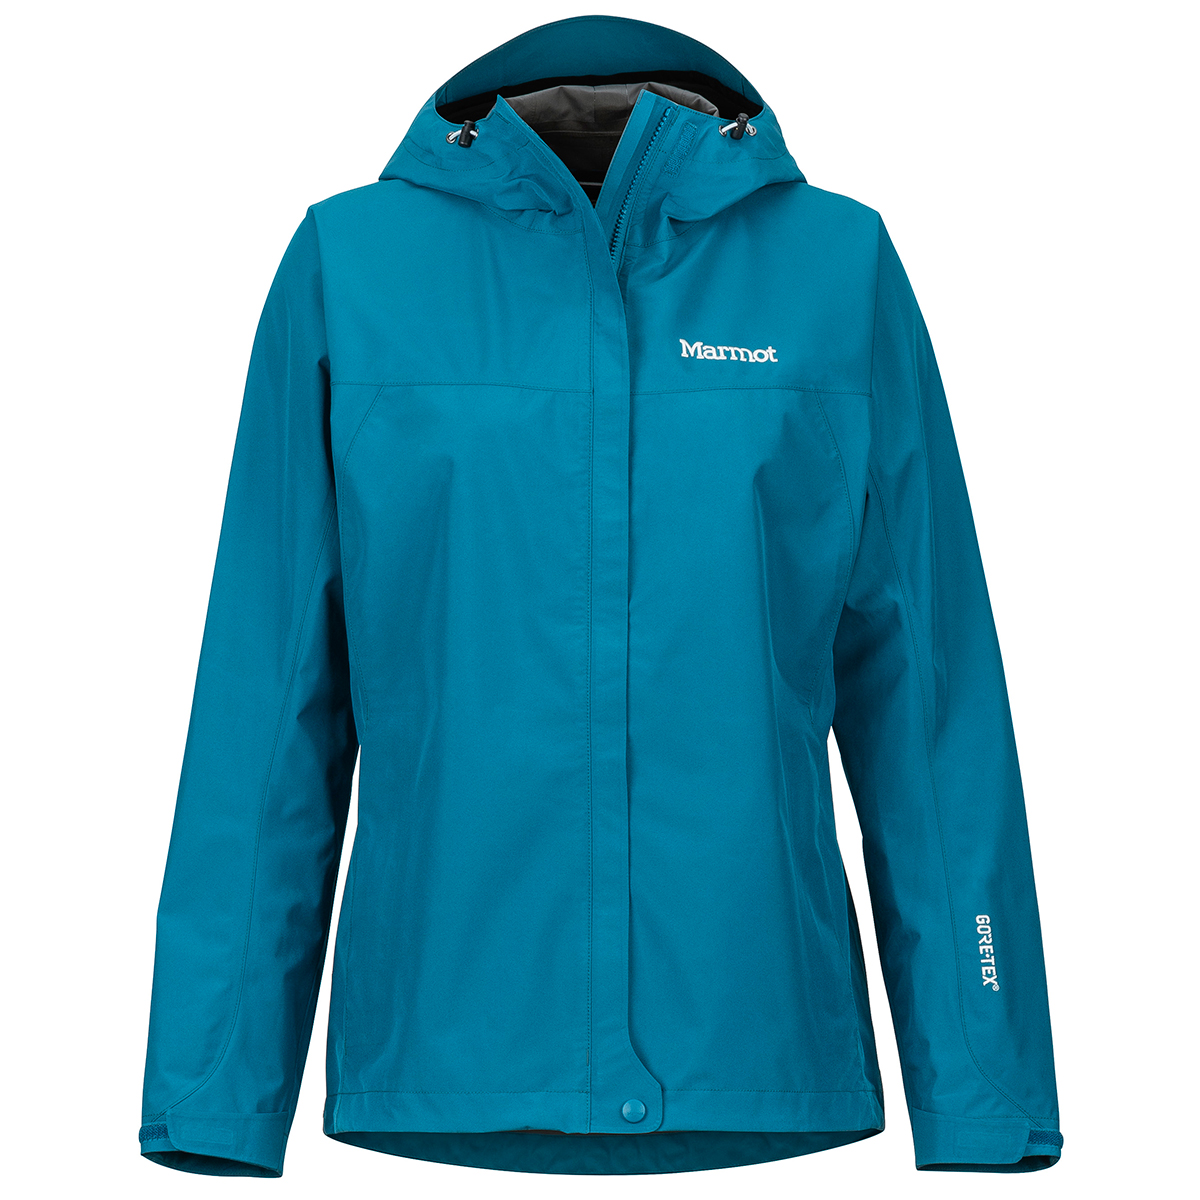 Marmot Women's Minimalist Waterproof Jacket - Blue, XS